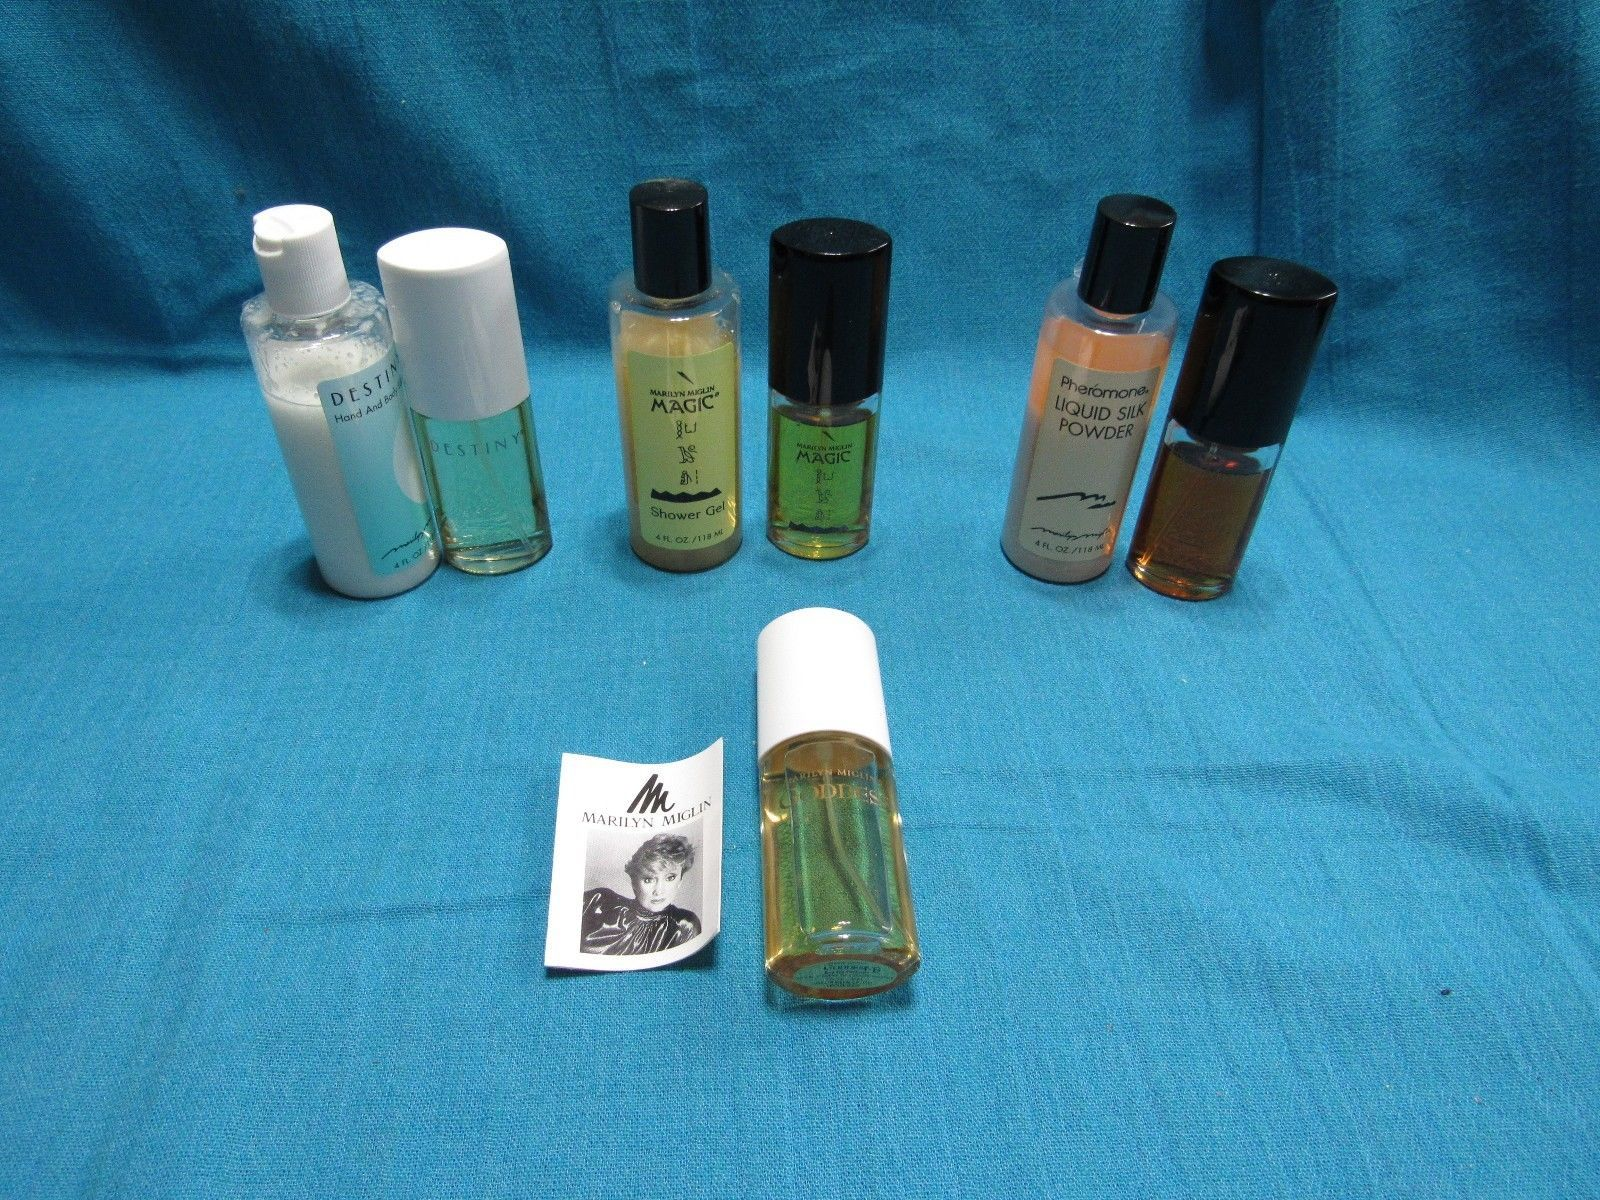 Pheromone Magic Destiny Goddess Marilyn Miglin Powder Gel Lotion Spray Set